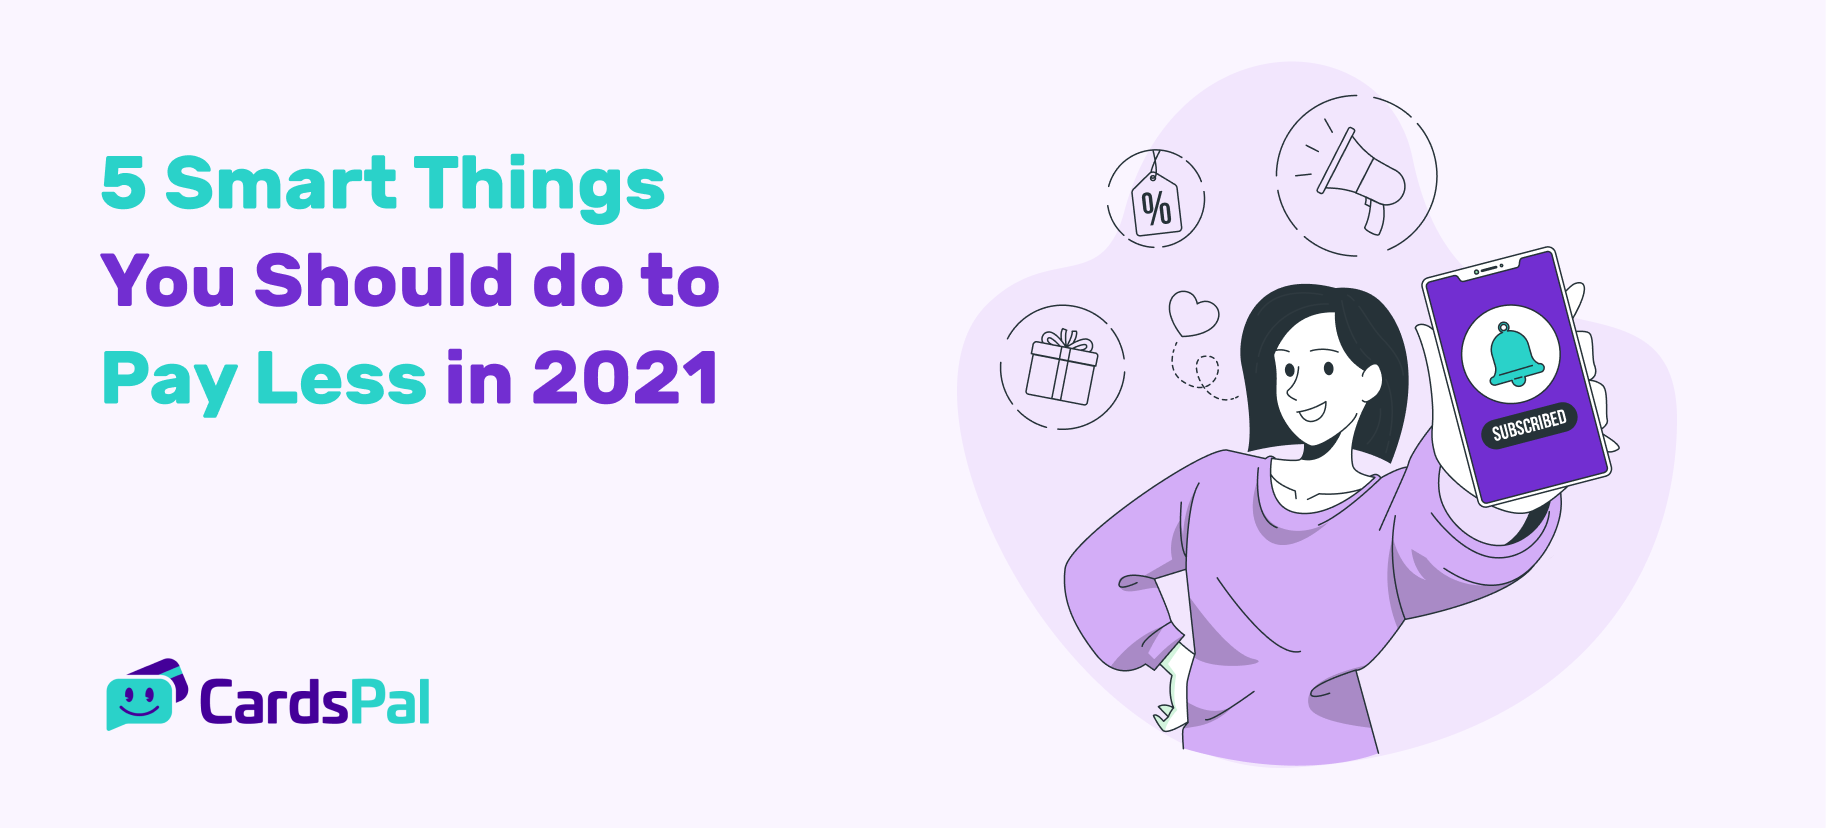 5 Smart Things You should do to Pay Less in 2021